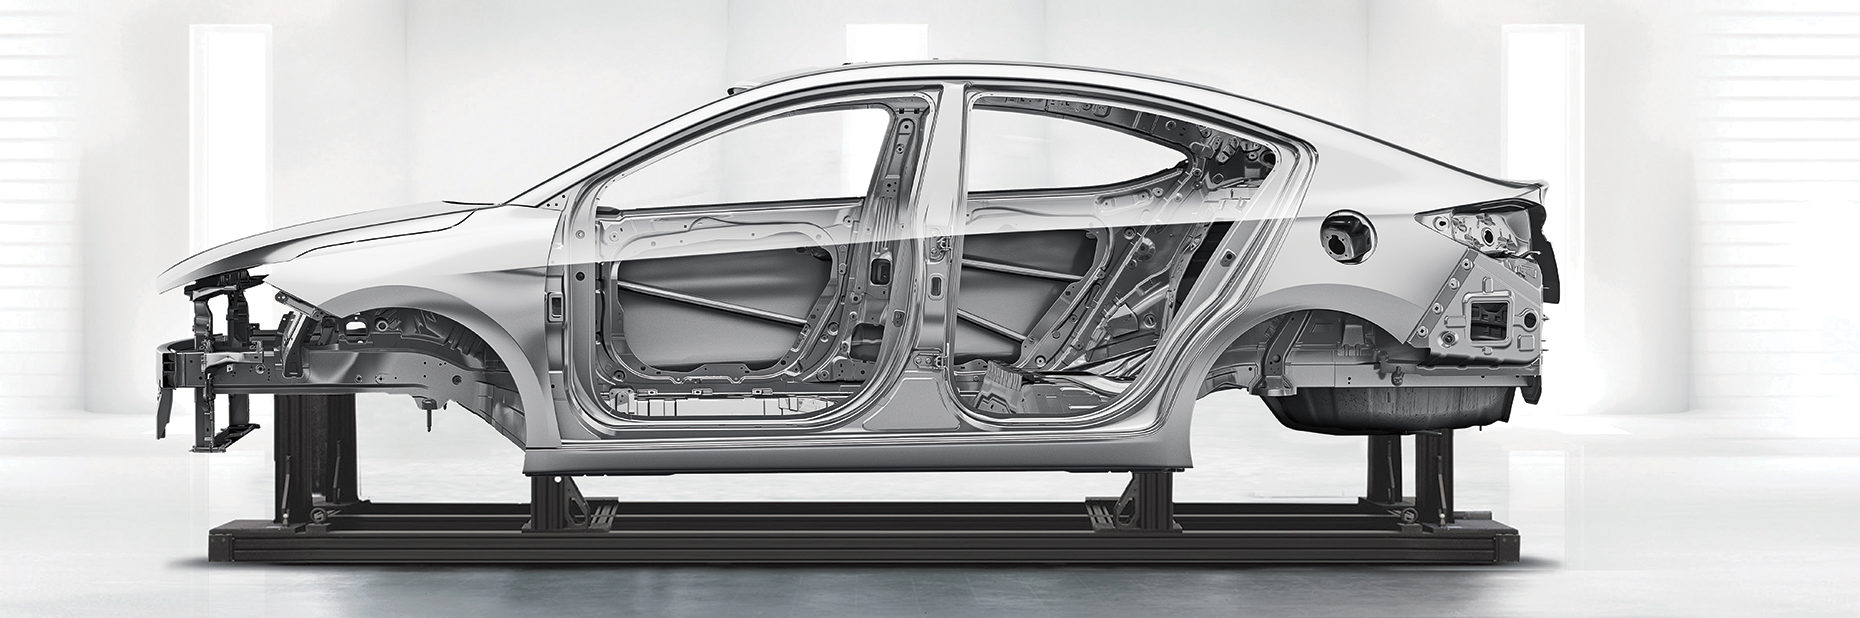 SUPERSTRUCTURE core of the Hyundai Elantra